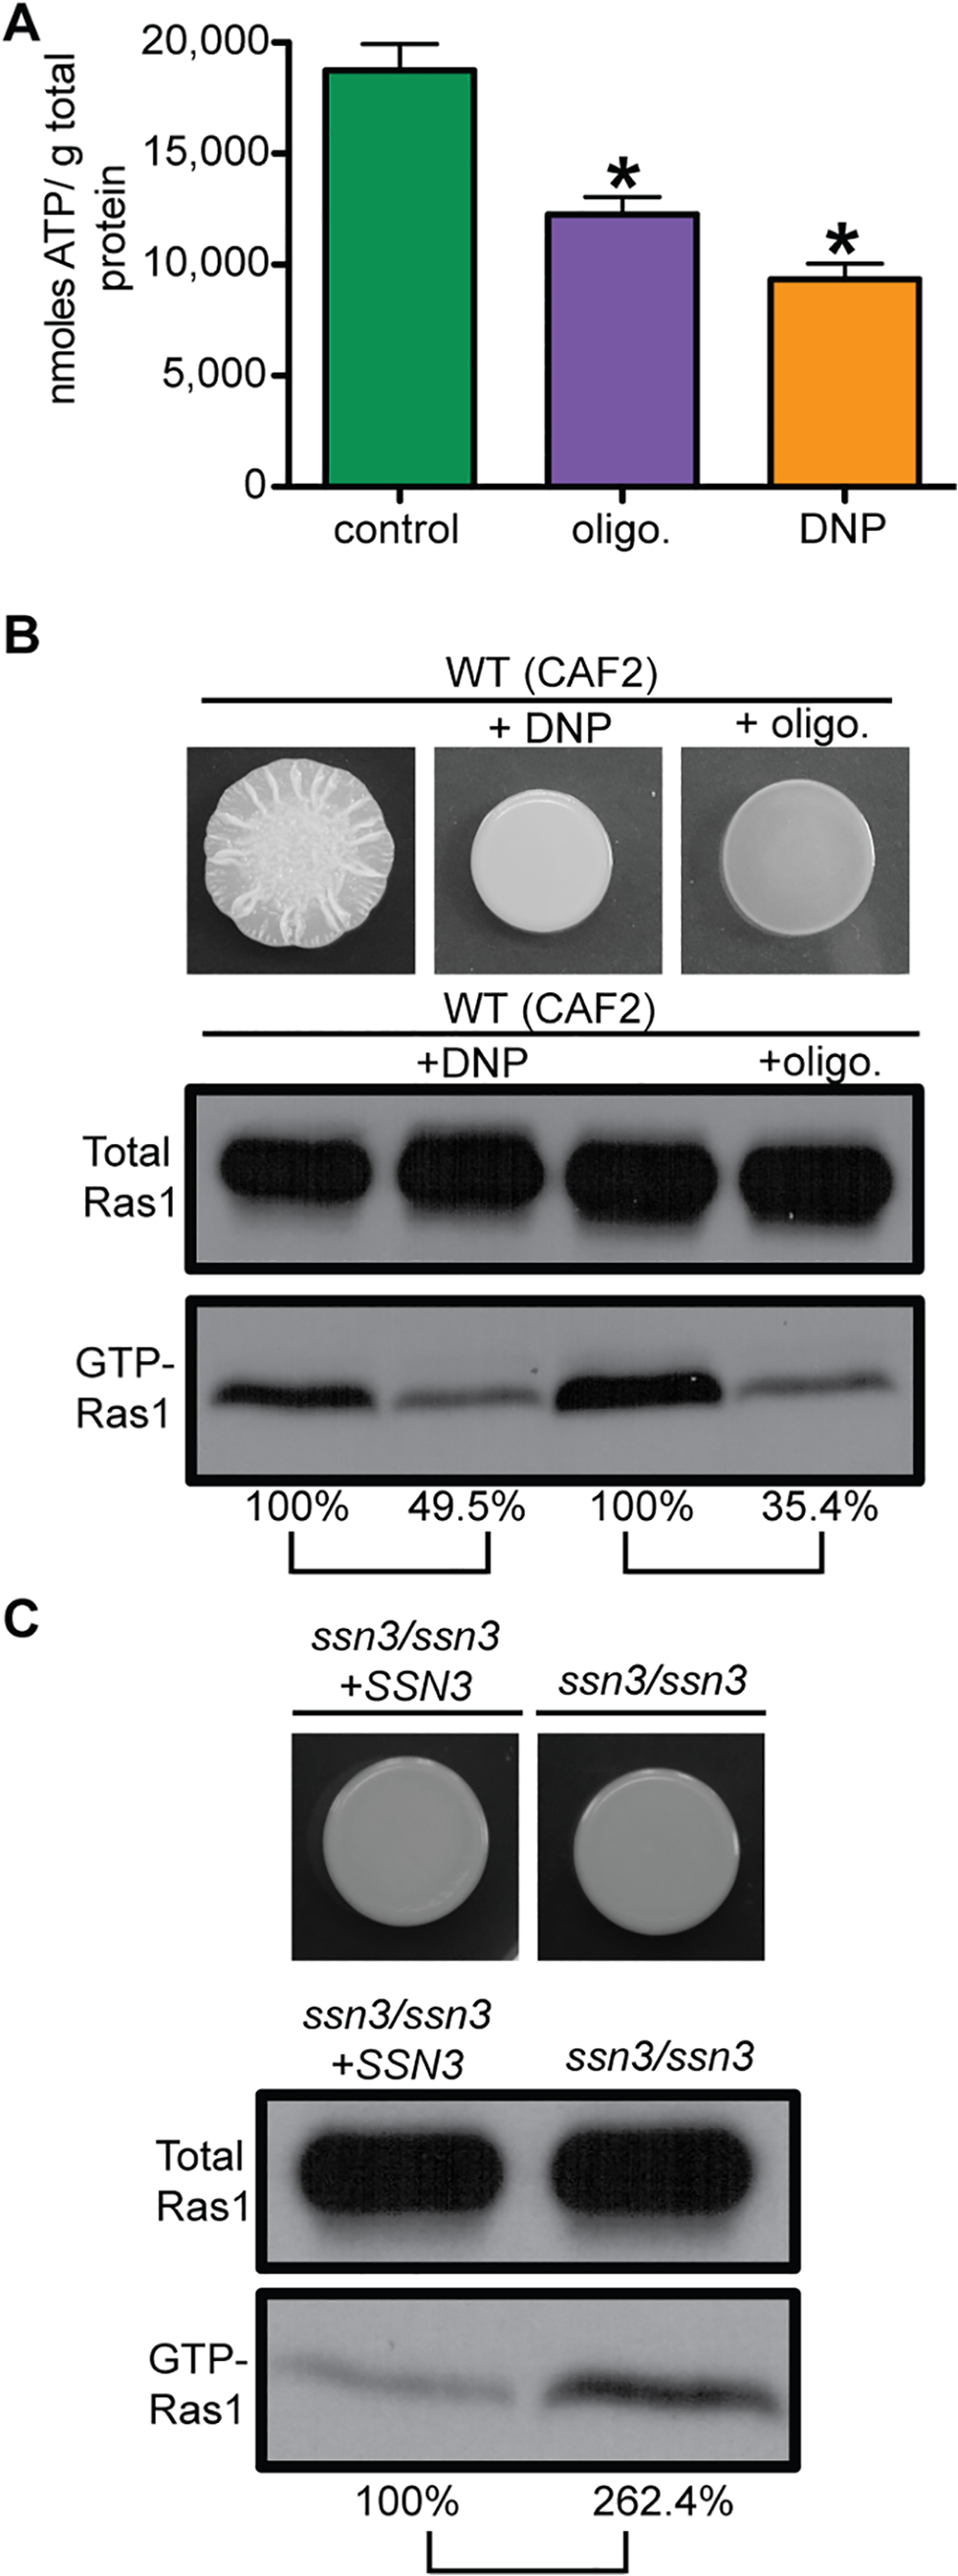 Ras1 signaling depends on total intracellular ATP levels.